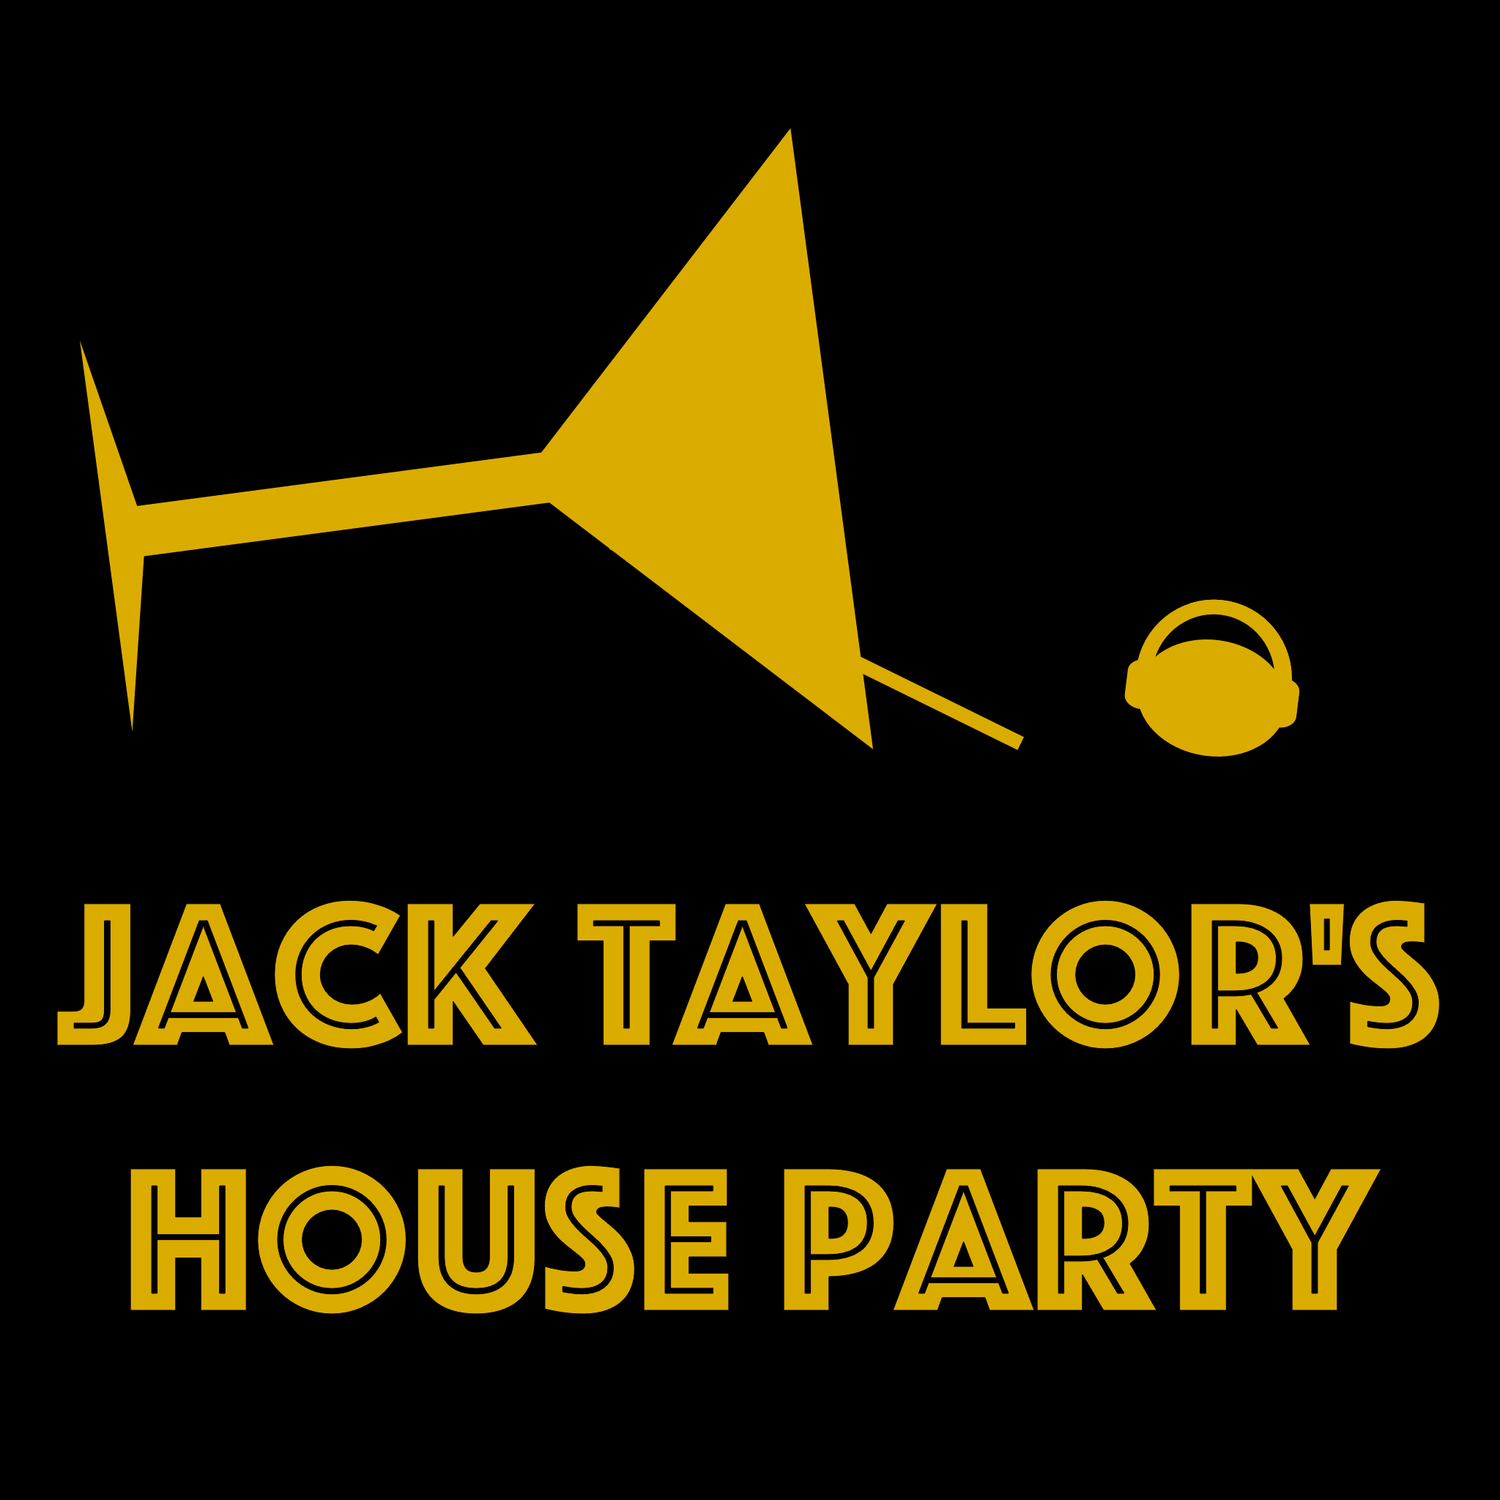 Jack Taylor's House Party